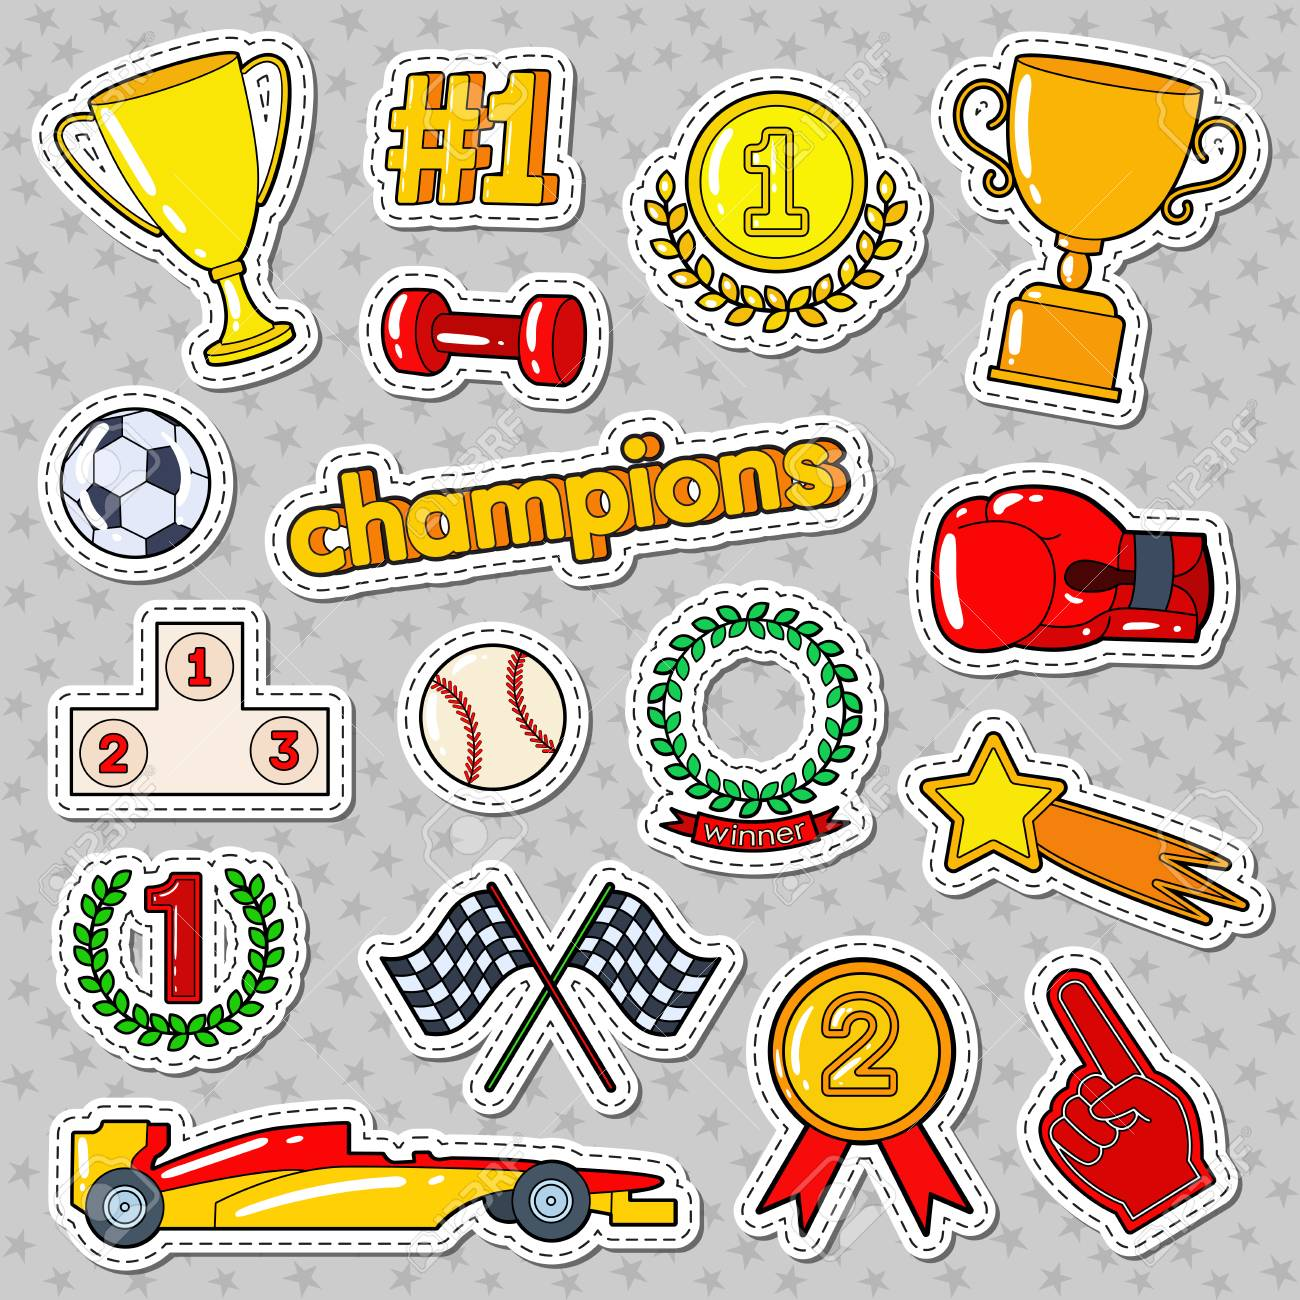 Champions doodle with medals prize and podium sports stickers badges and patches